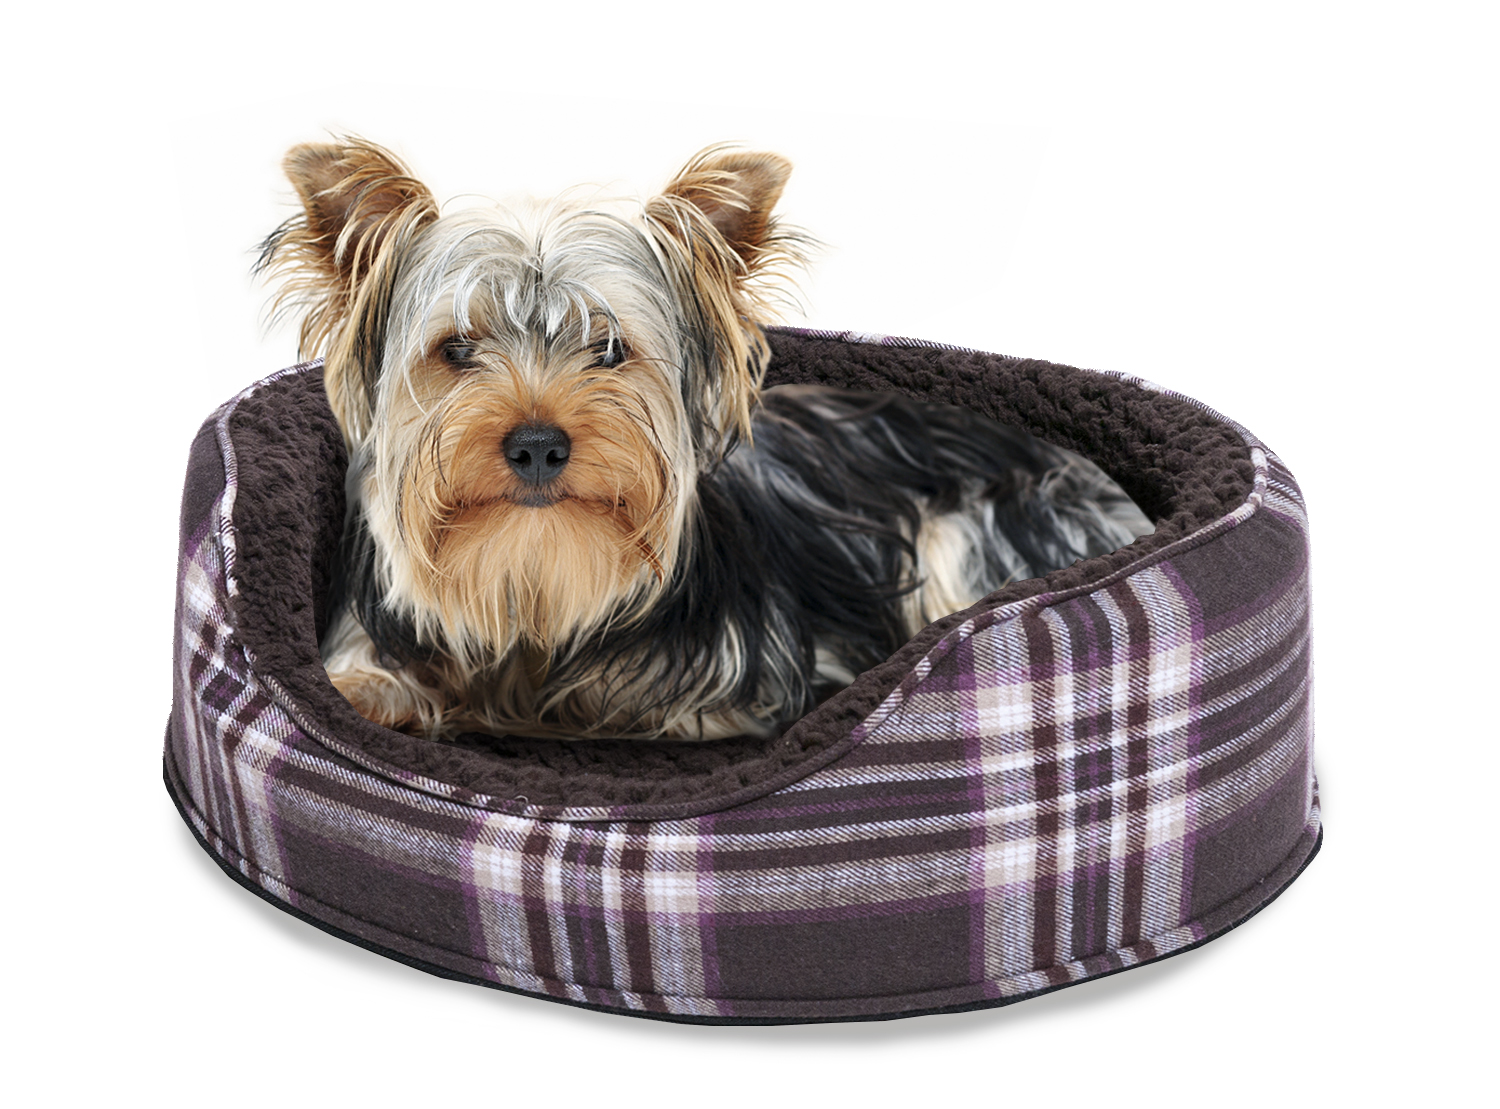 catnap pet products case study 6 1 Hero dog treats case study solution, hero dog treats case solution canadian pet food market is hire us for originally written case solution/ analysis.